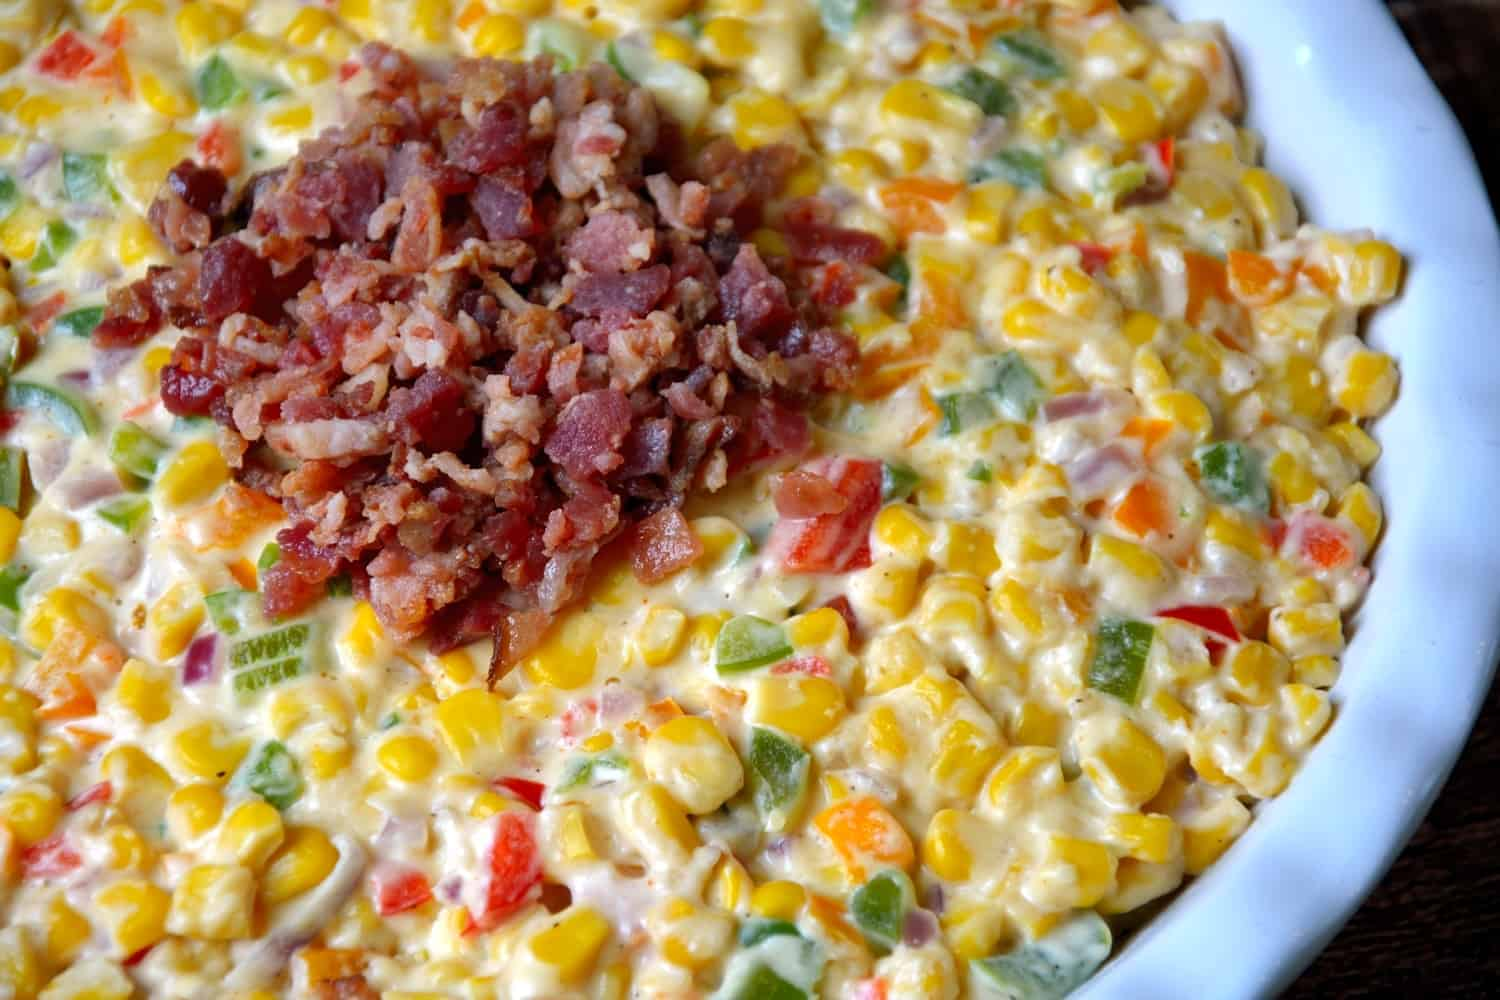 Creamy Corn and Bacon Dip is a blend of fresh vegetables, bacon and decedent cream cheese for an appetizer that complements any occasion. | www.savoryexperiments.com